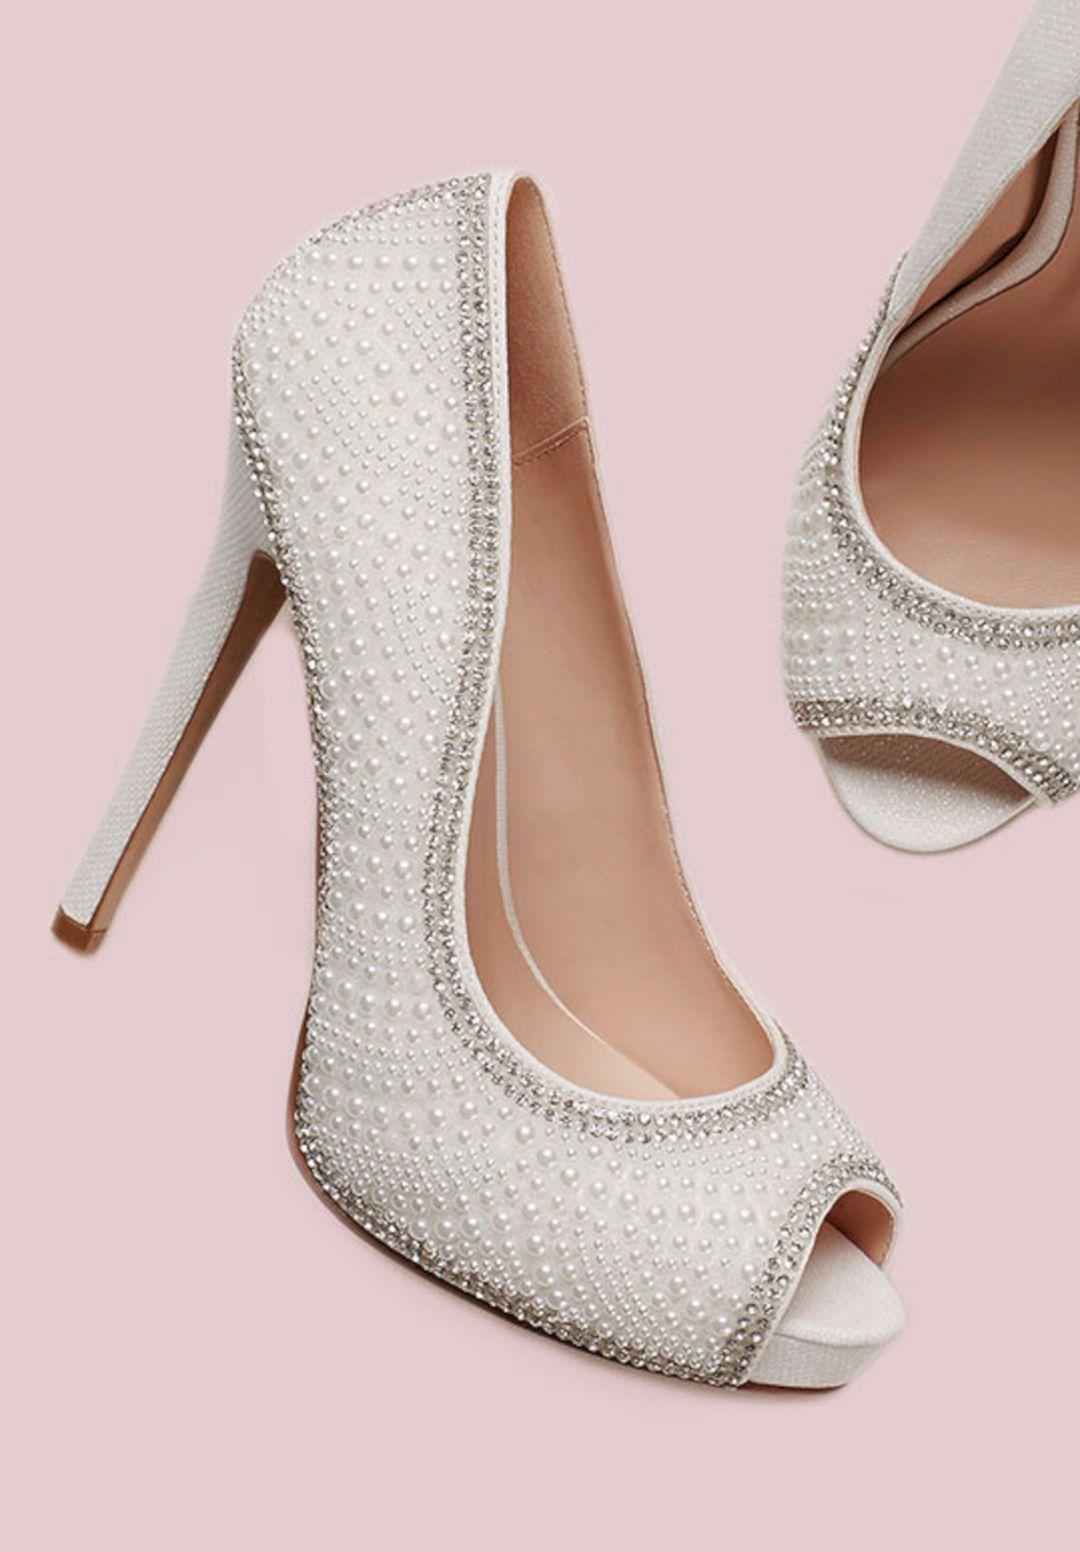 45 Amazing Wedding Shoes Ideas You Will Love It